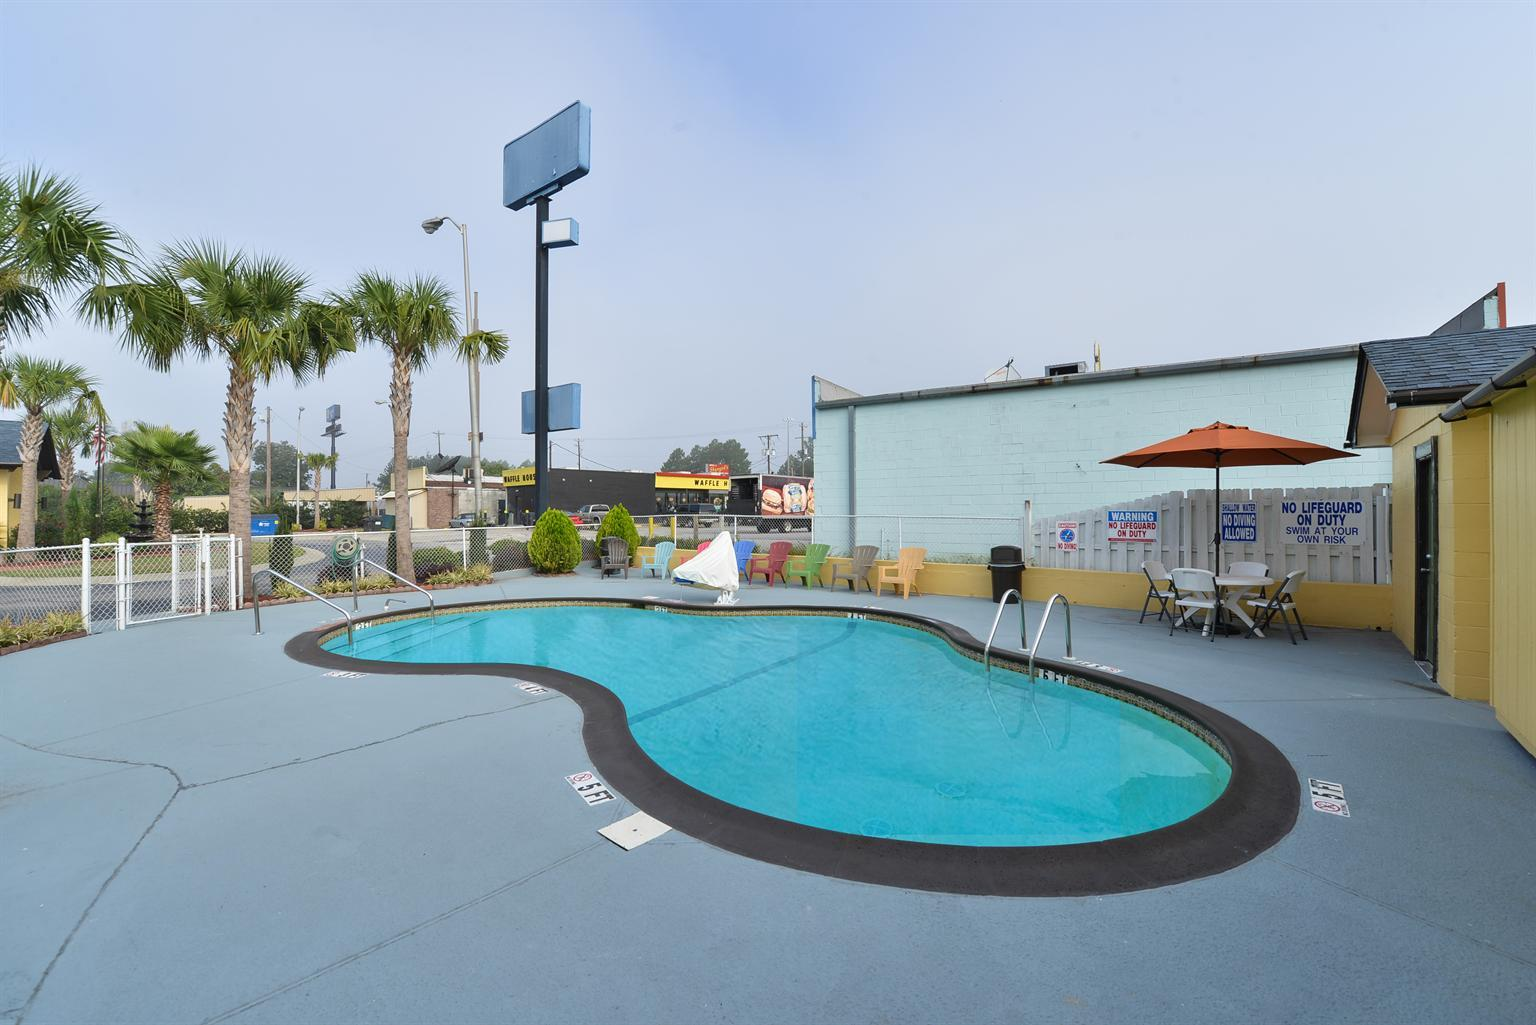 St George Sc Hotels And Motels